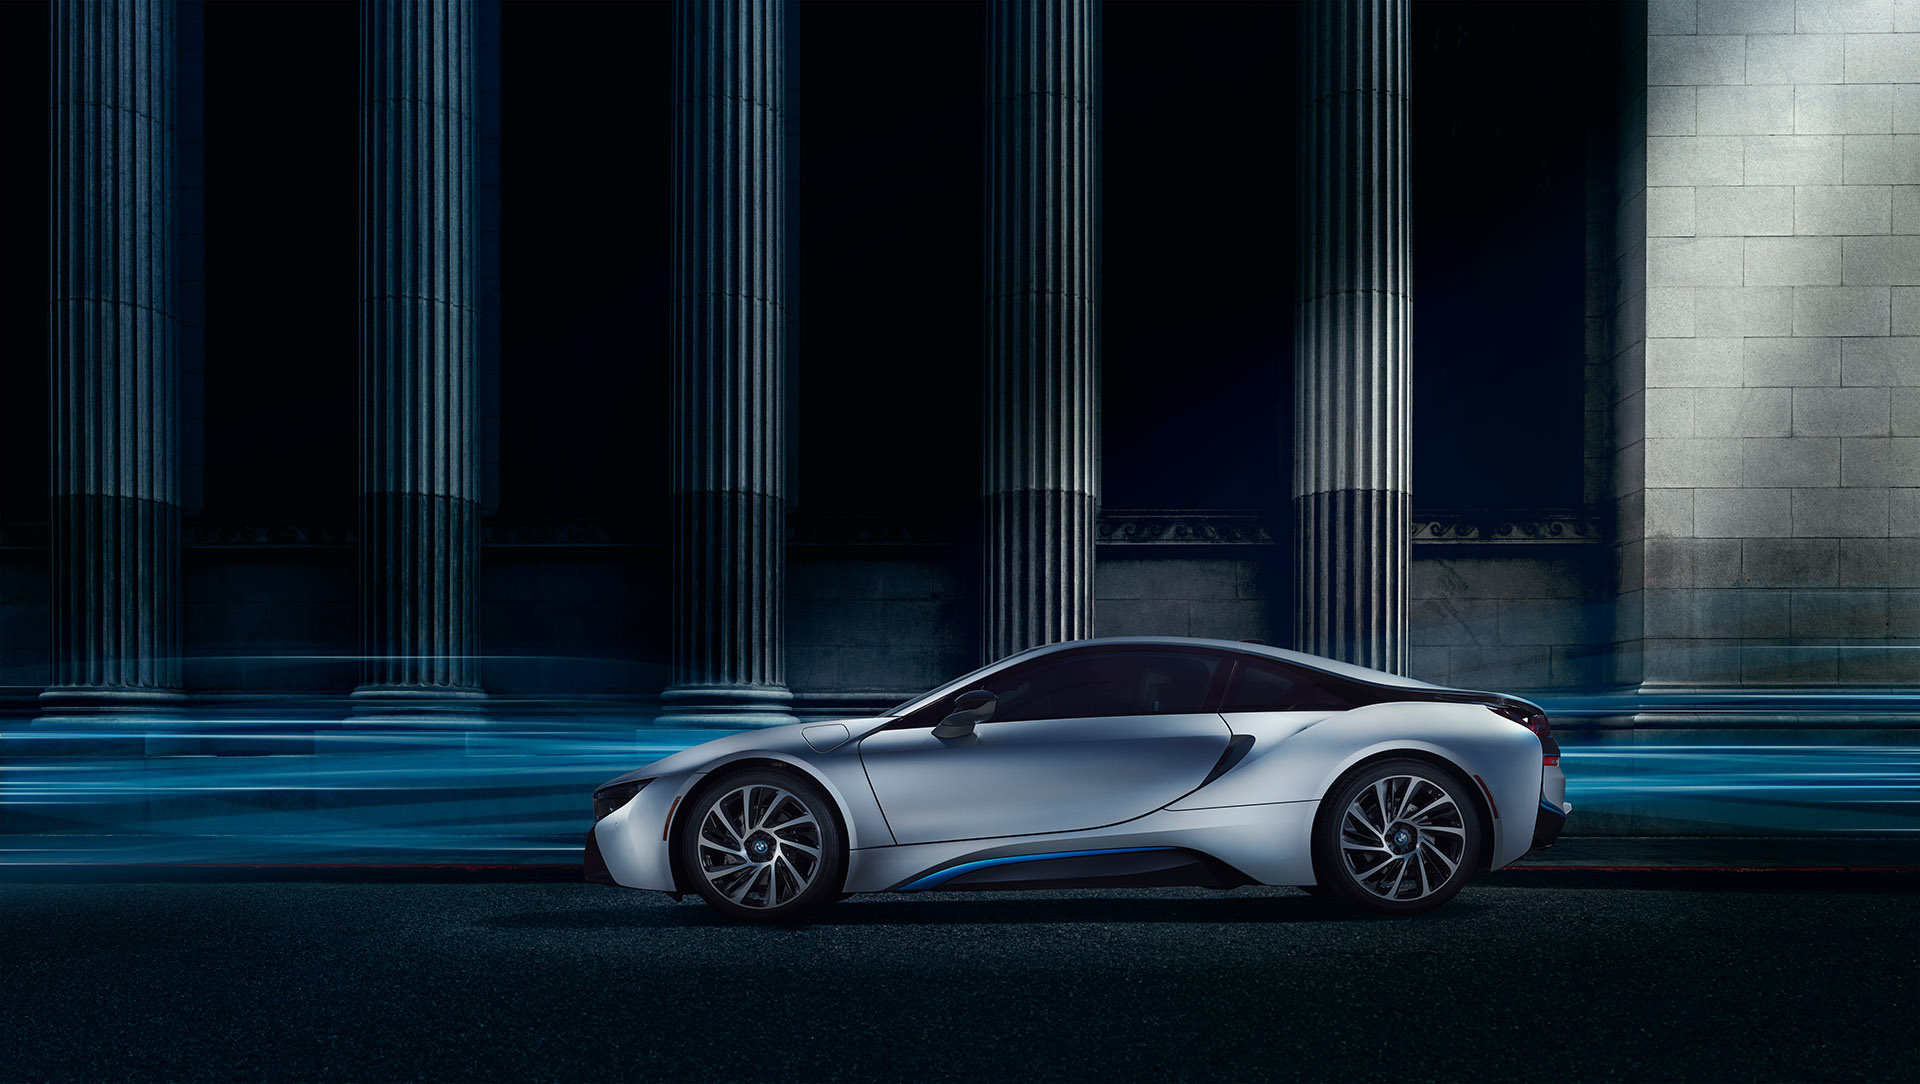 05-dw_1702_bmw_i8_test_shot_02_fnl_1920pxl_2018a